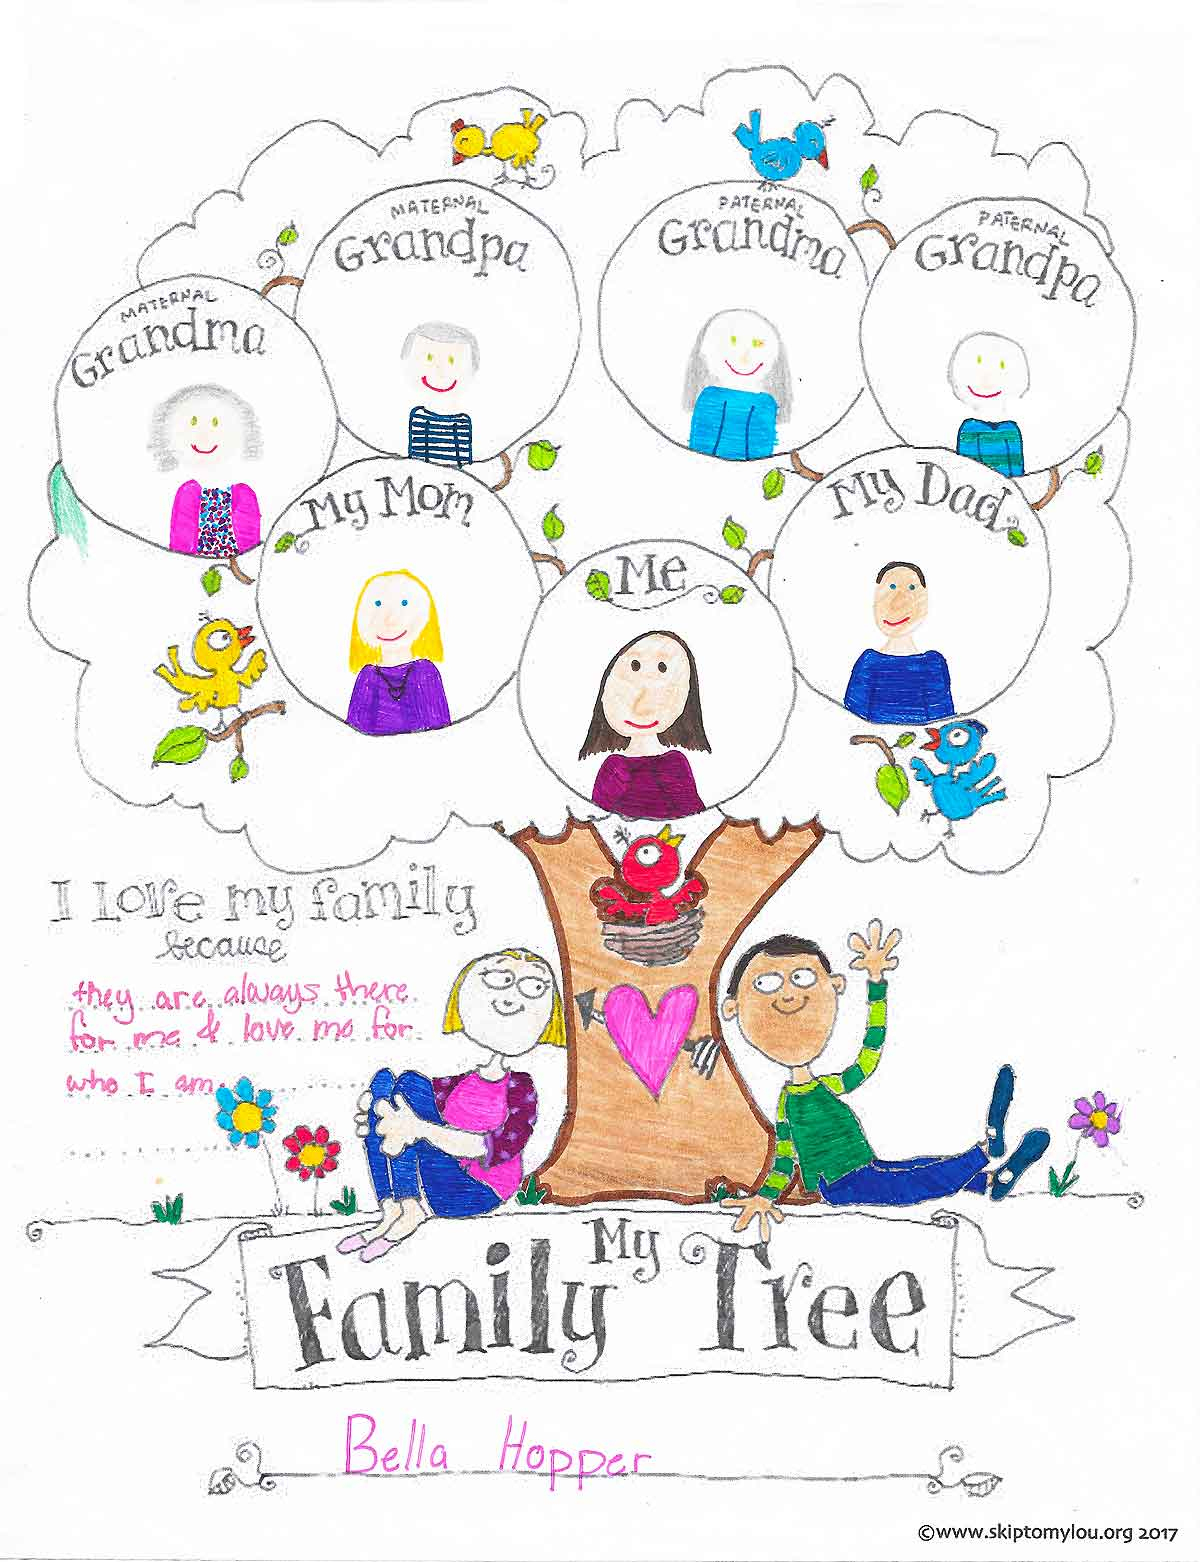 Free Printable Family Tree Coloring Page | Skip To My Lou - Free Printable Family Tree